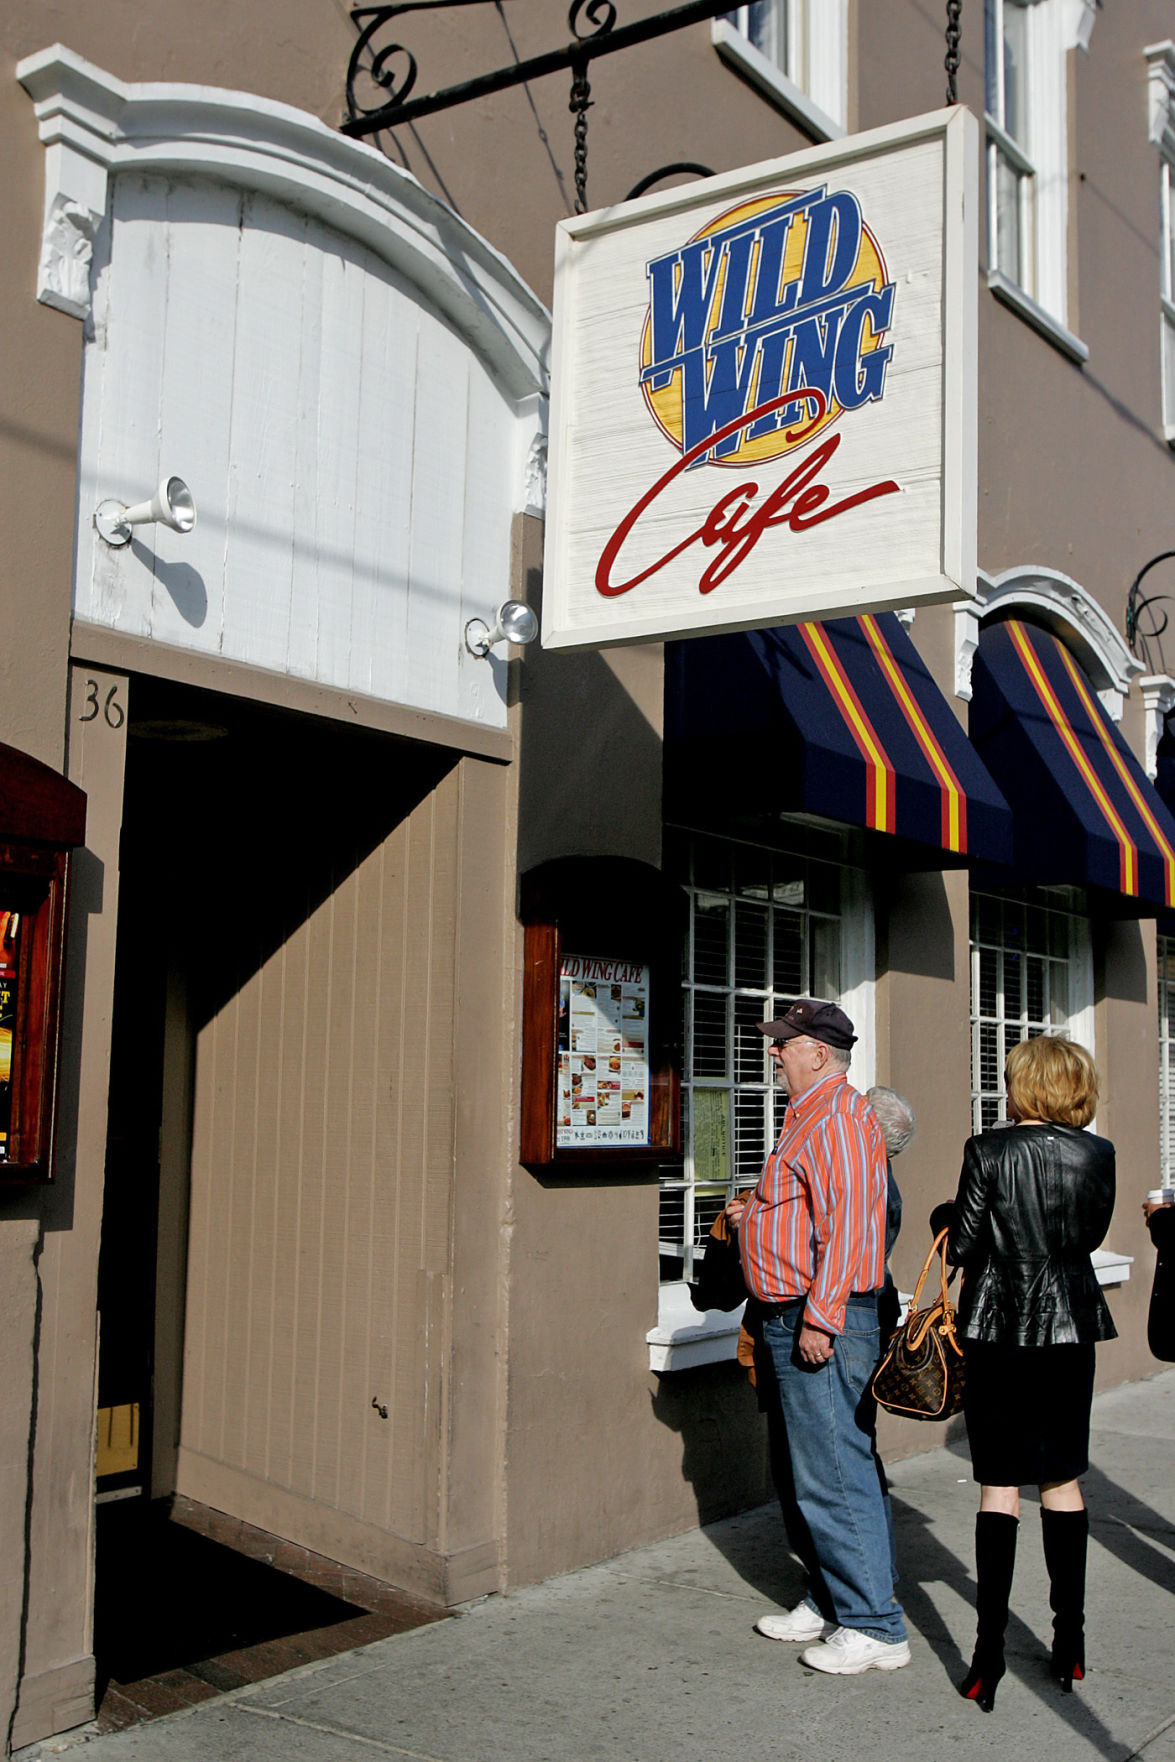 Mount Pleasant-based Wild Wing Cafe names new CEO